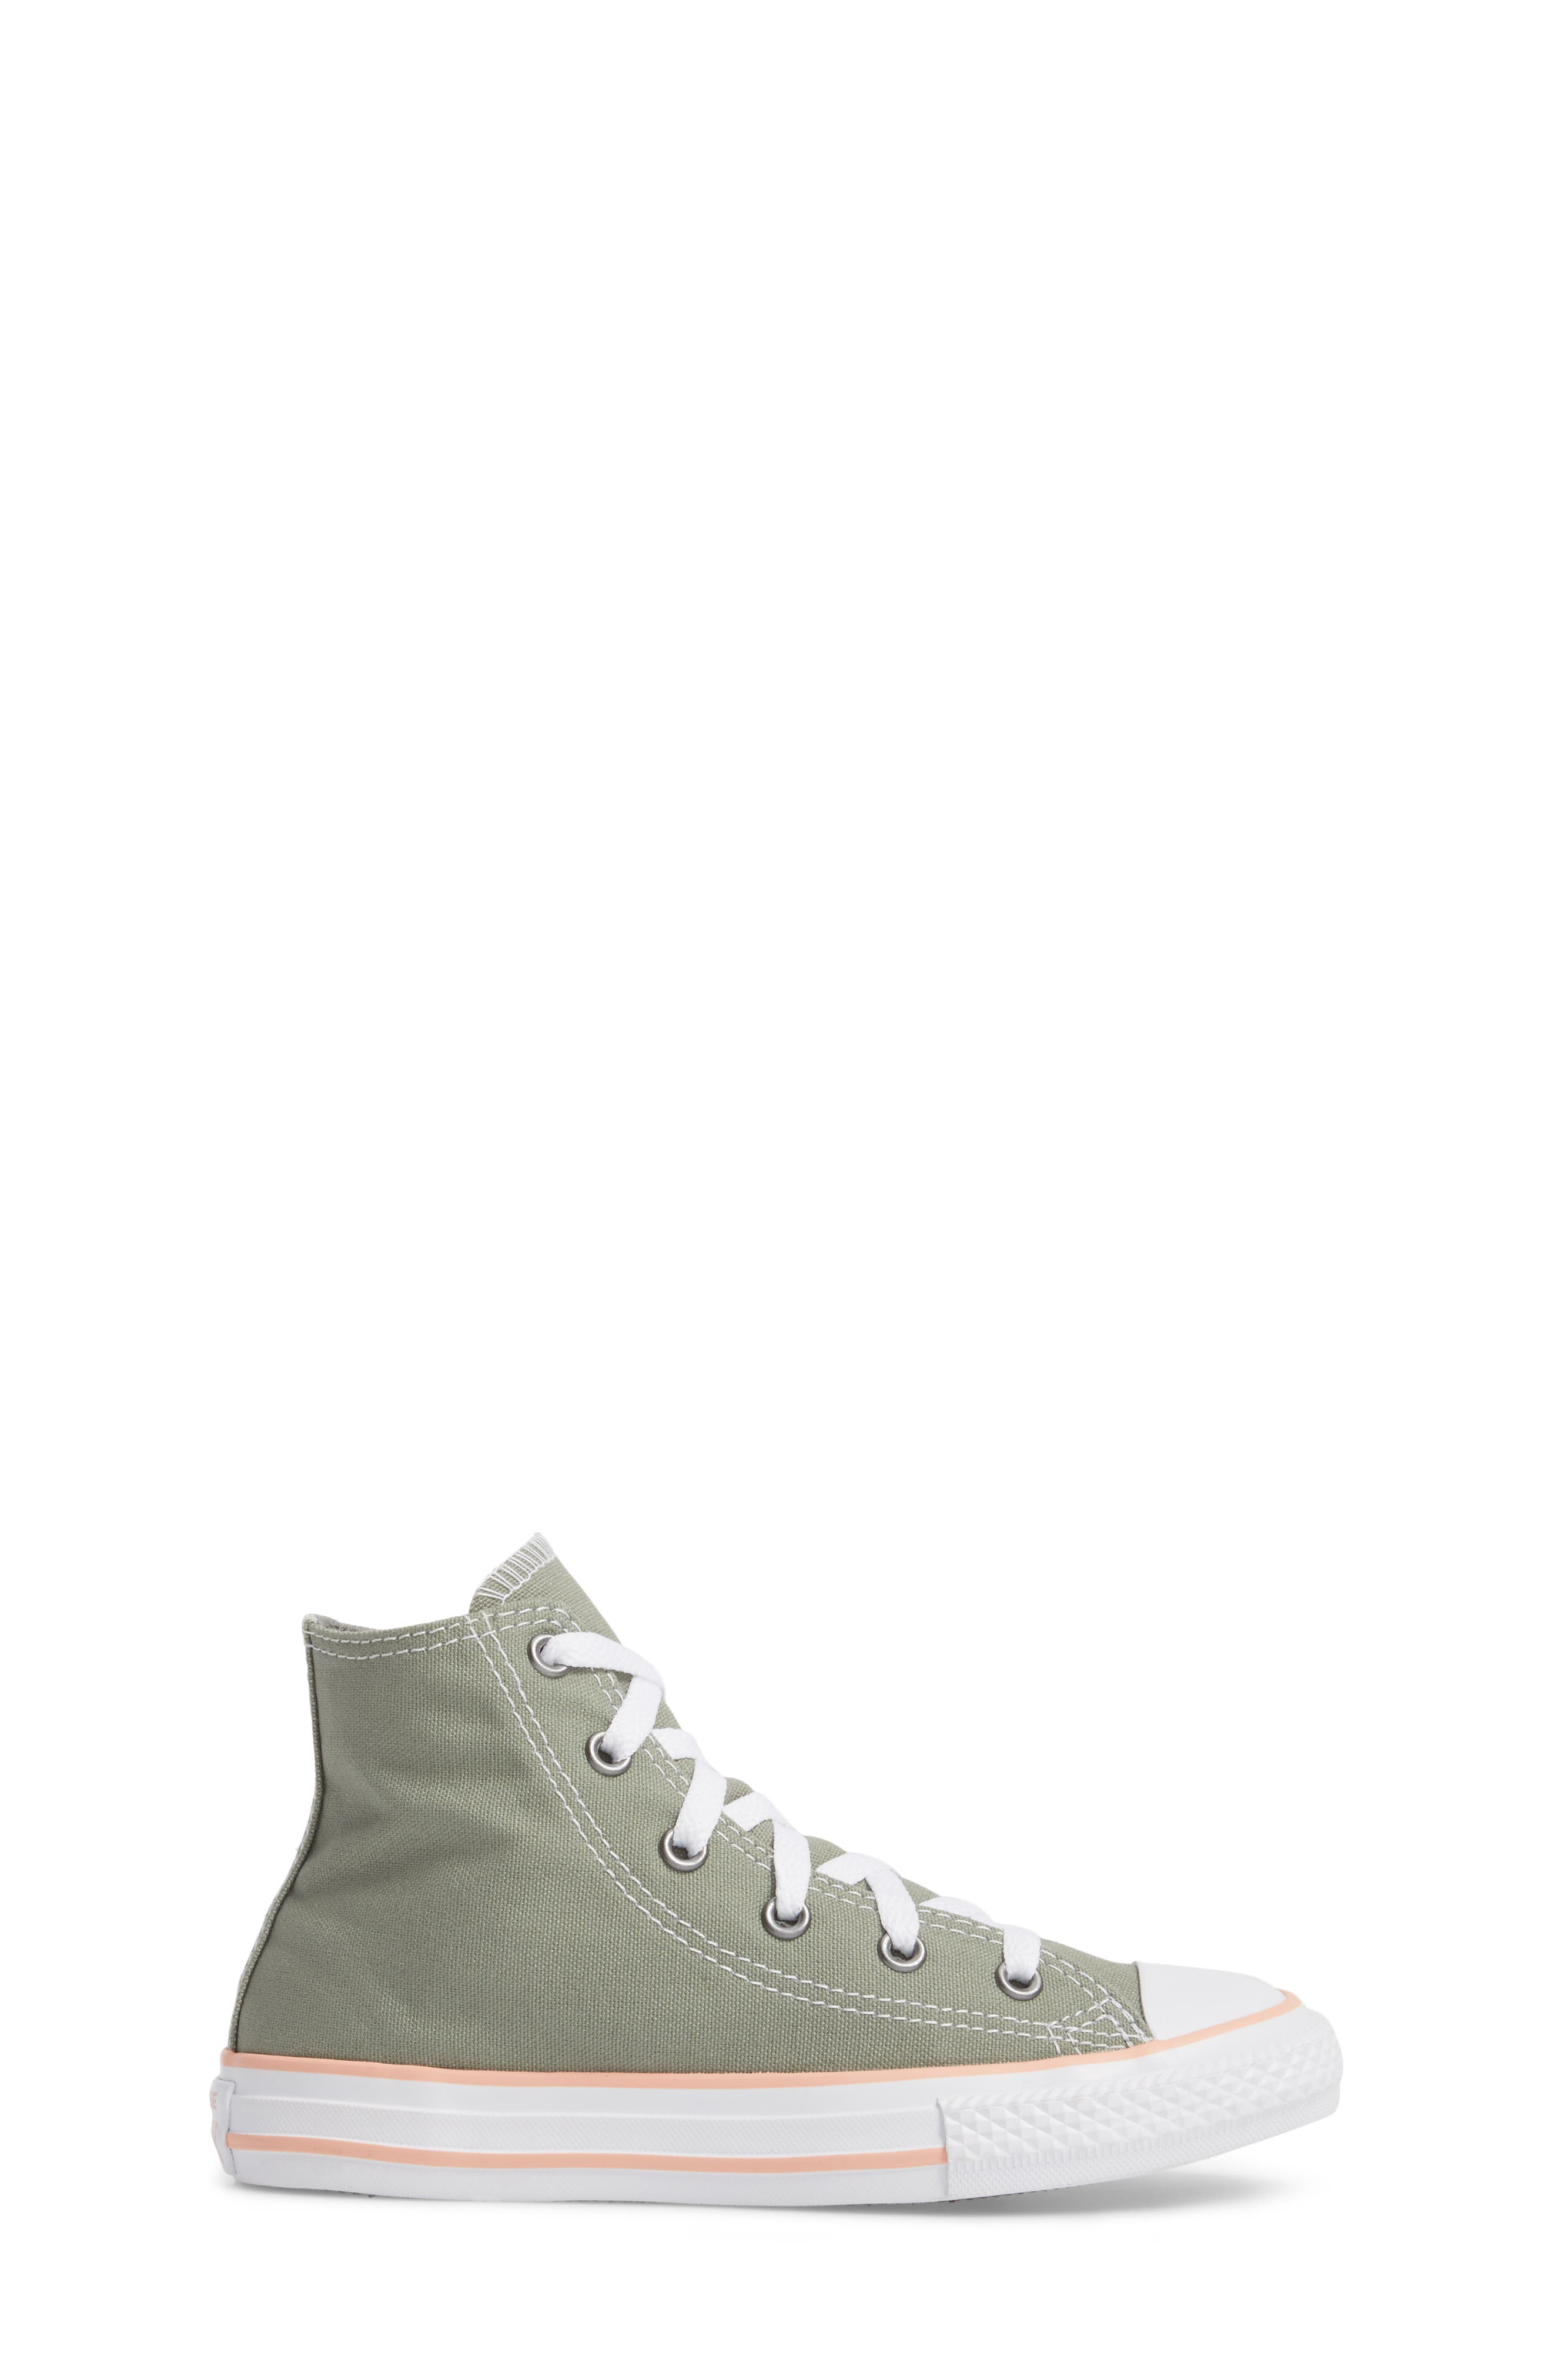 Chuck Taylor<sup>®</sup> All Star<sup>®</sup> High Top Sneaker,                             Alternate thumbnail 3, color,                             020